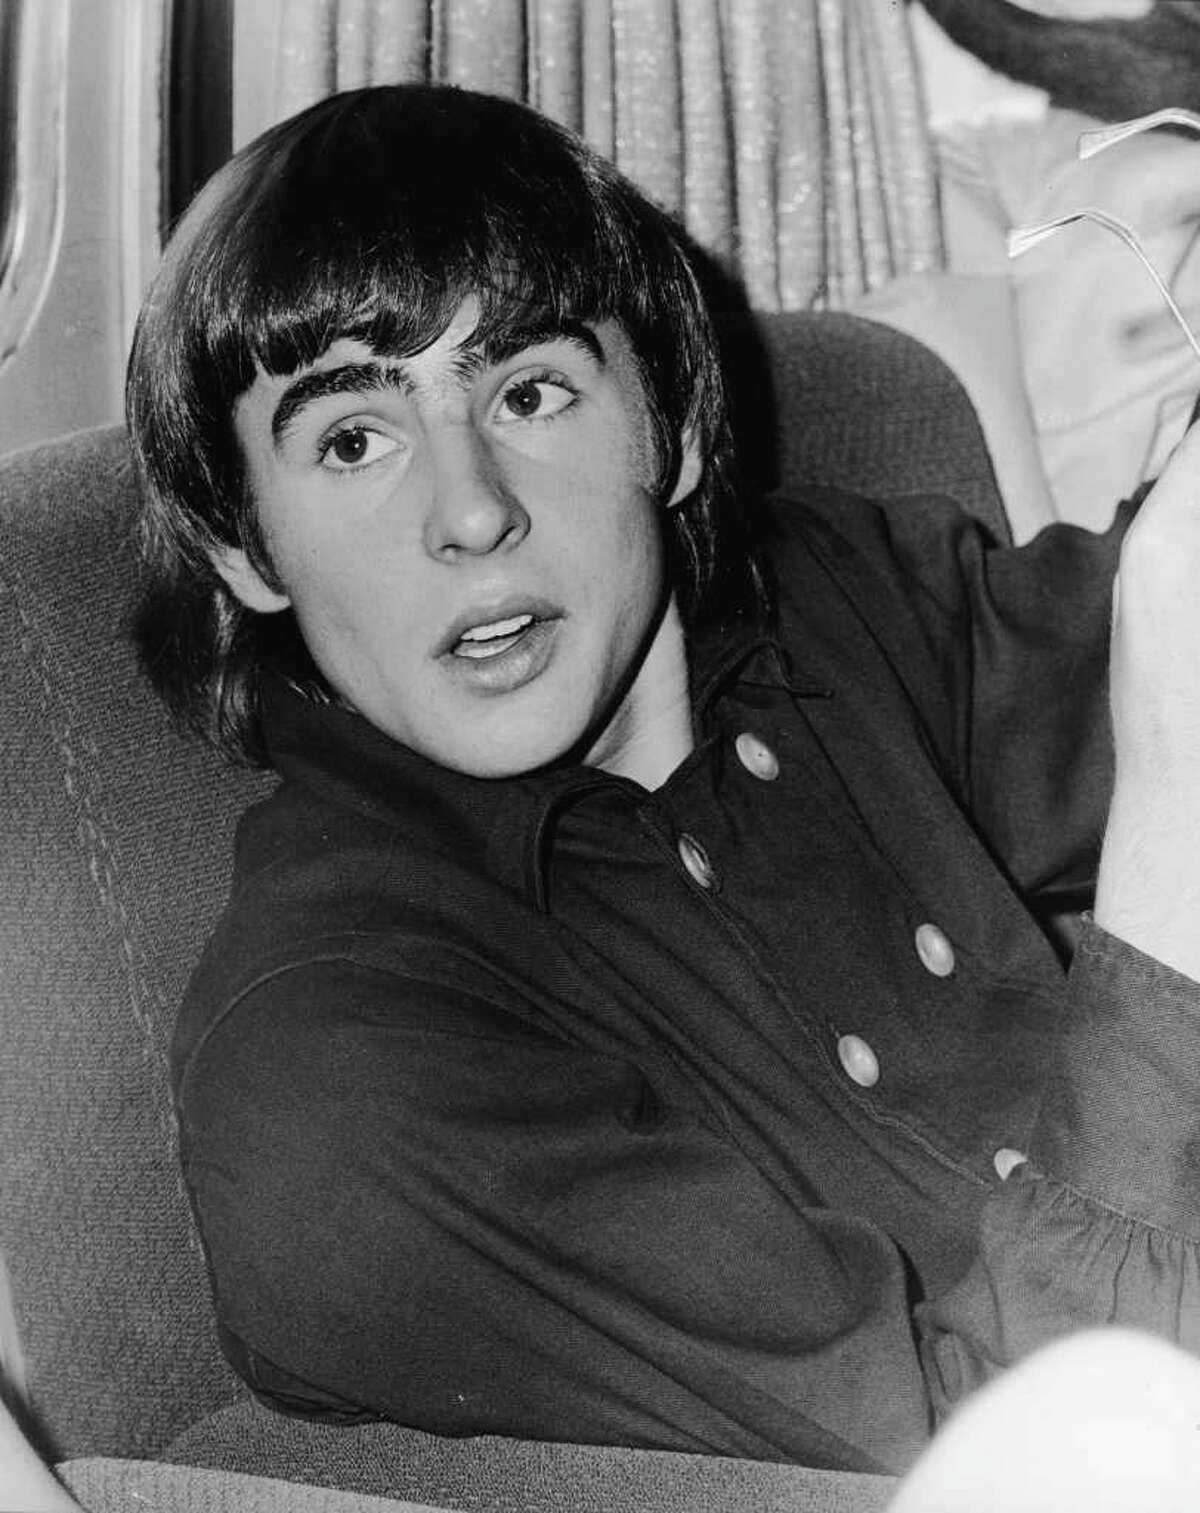 British musician and actor Davy Jones, in a double-breasted shirt, of the popular music and television group the Monkees, late 1960s.